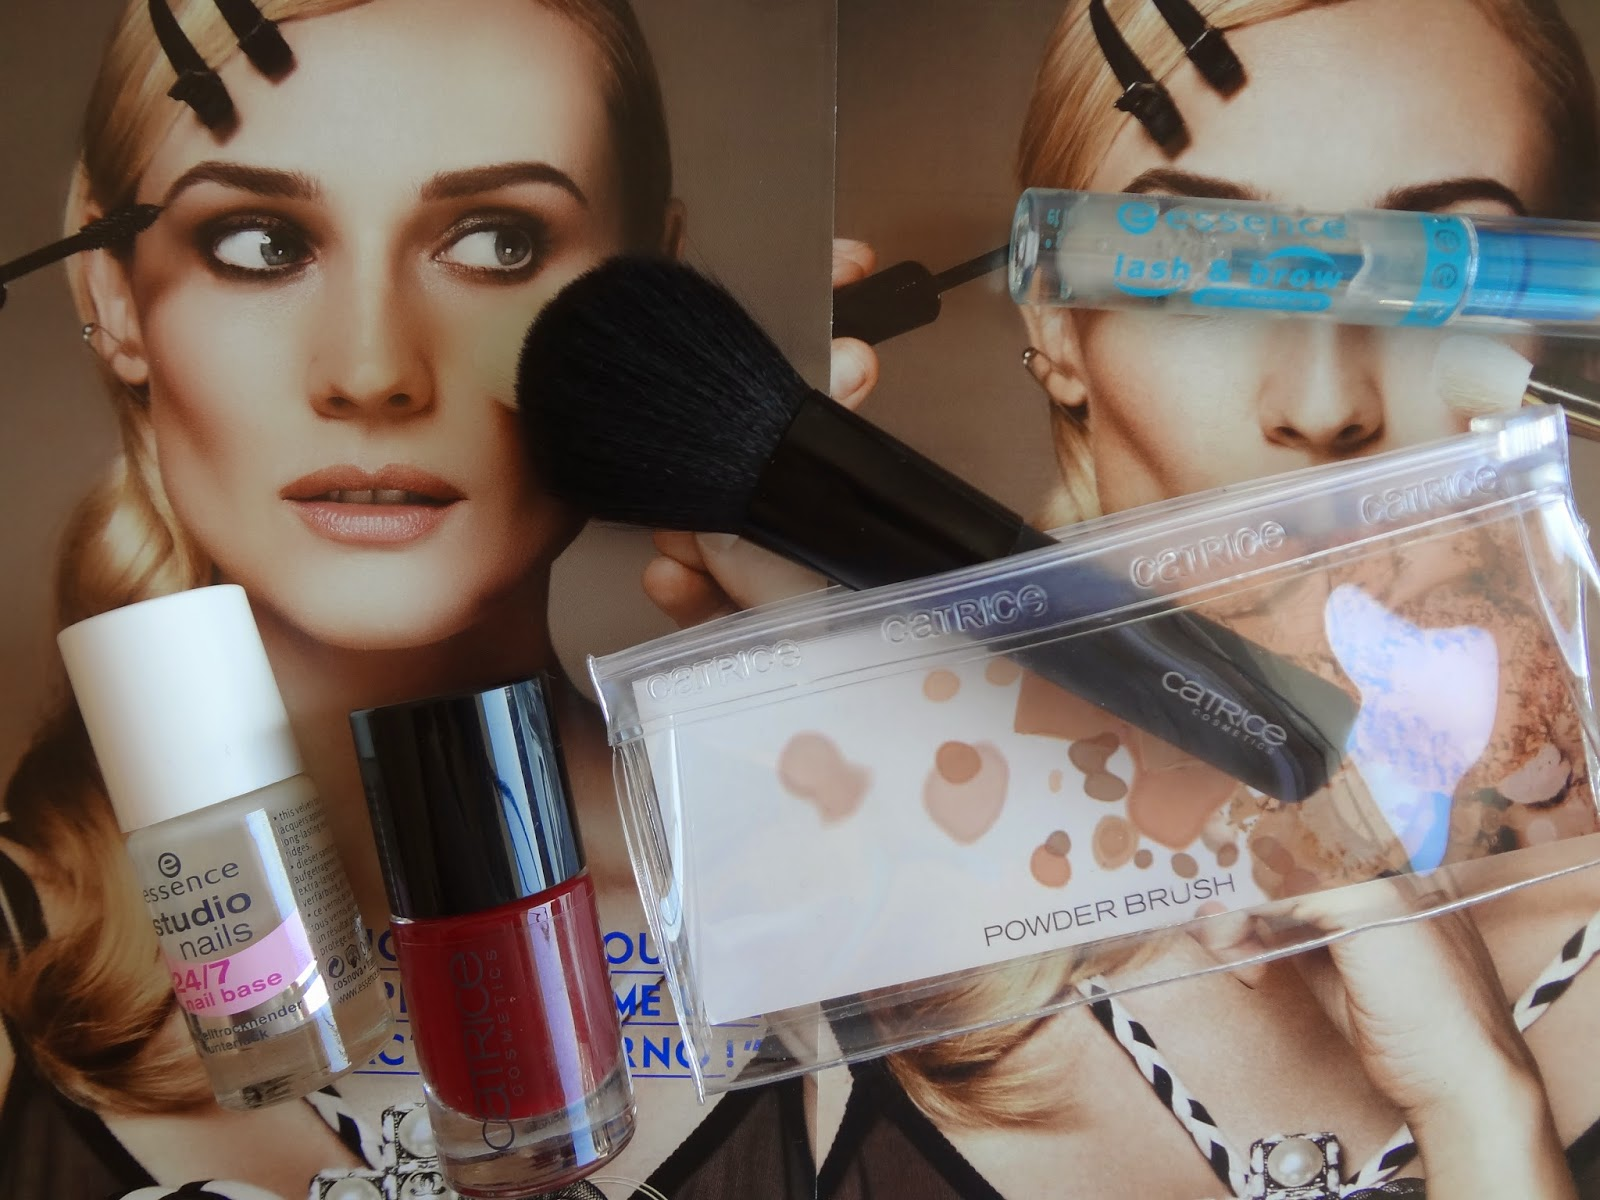 Make-up-catrice-essence-beaute-beauty-revue-review-eyeshadow-palette-absolute-nude-poudre-powder-brush-vernis-rouge-levres-lipstick-nail-polish-bb-cream-bronzer-poudre-bronzante-sun-glow-matt-bronzing-powder-glamour-to-go-base-gel-sourcils